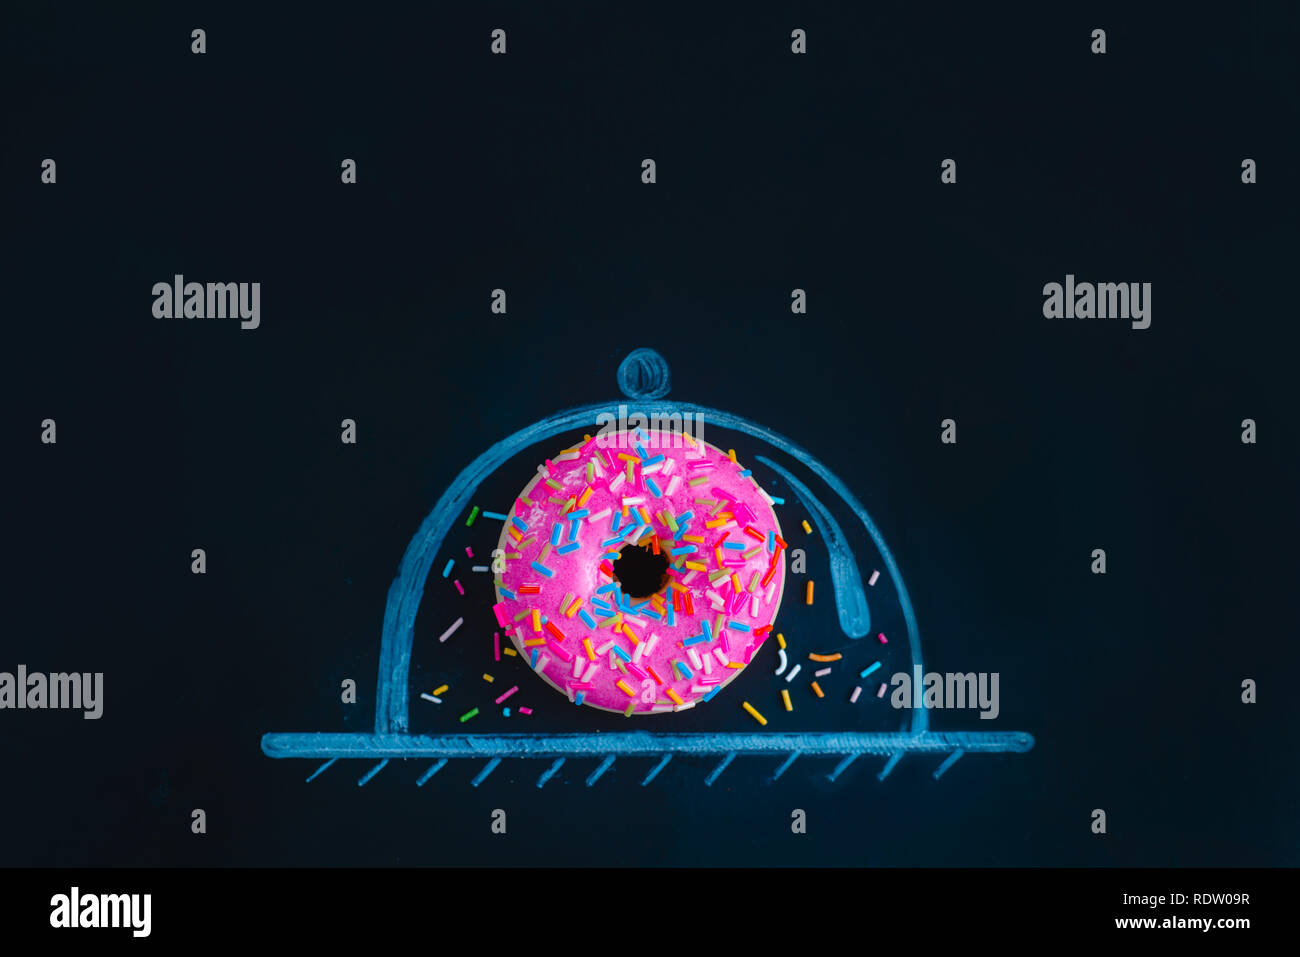 Pink glazed donut under a glass dome chalk drawing. Preserving the precious creative concept. Flat lay food photography. - Stock Image